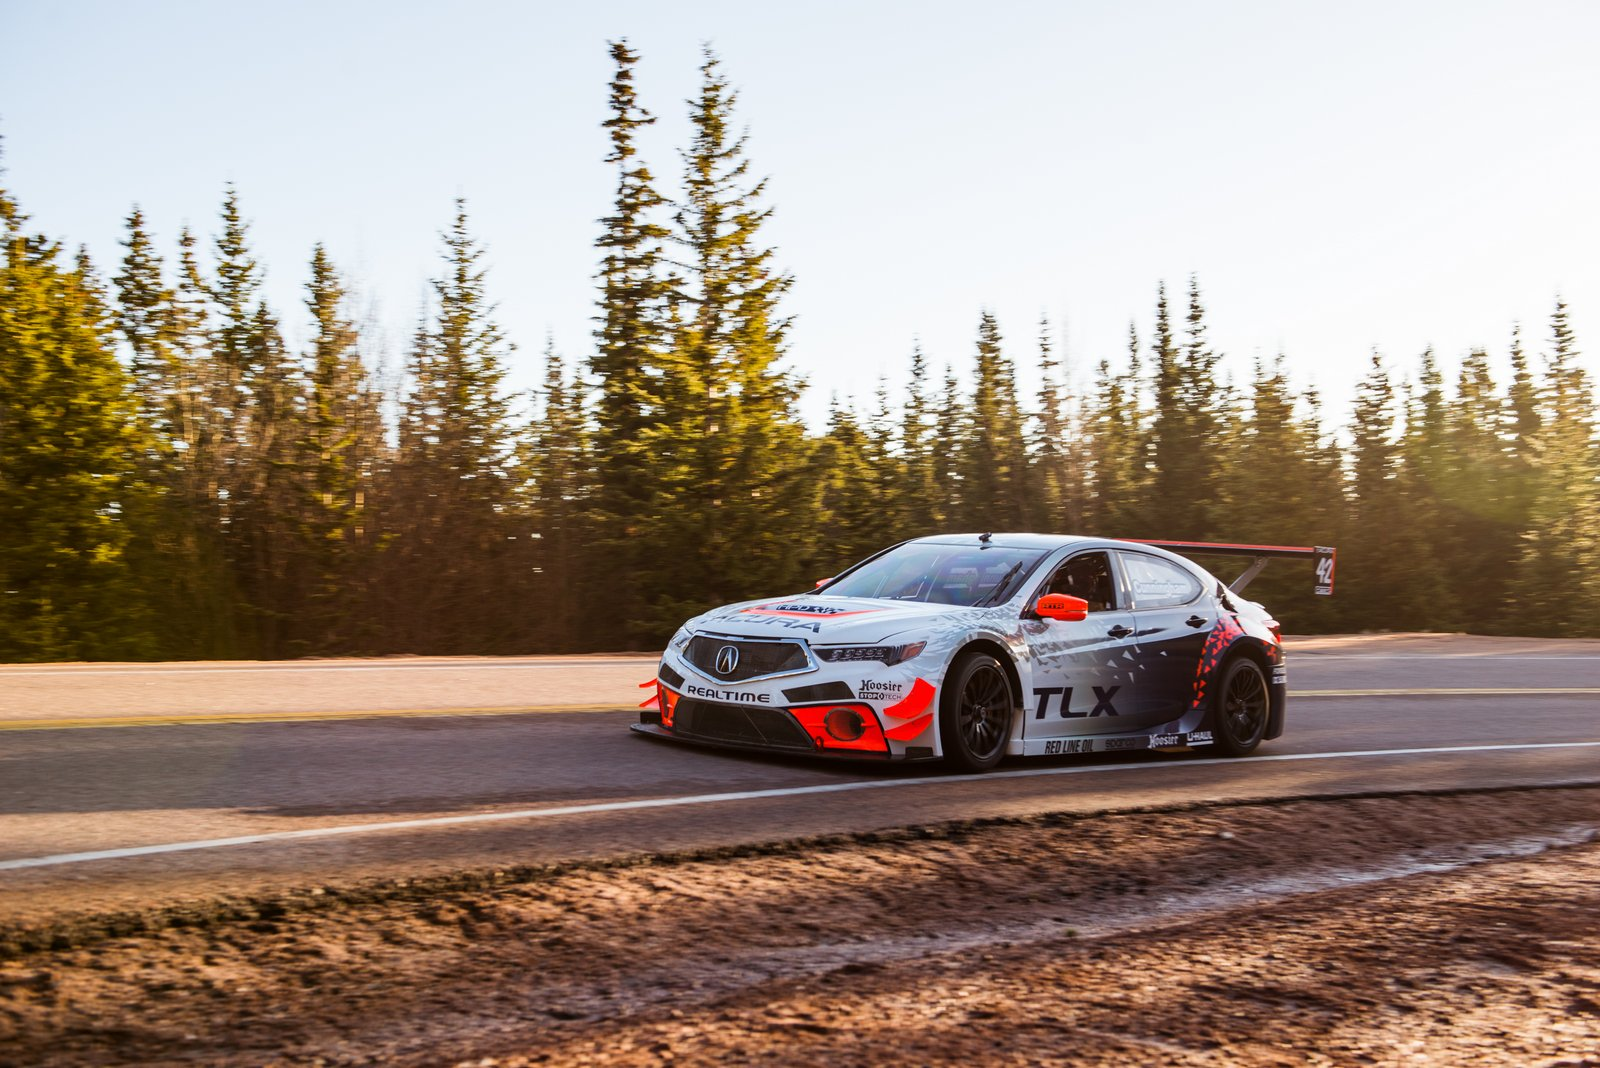 Acura NSX And TLX A-Spec To Race At Pikes Peak | Carscoops